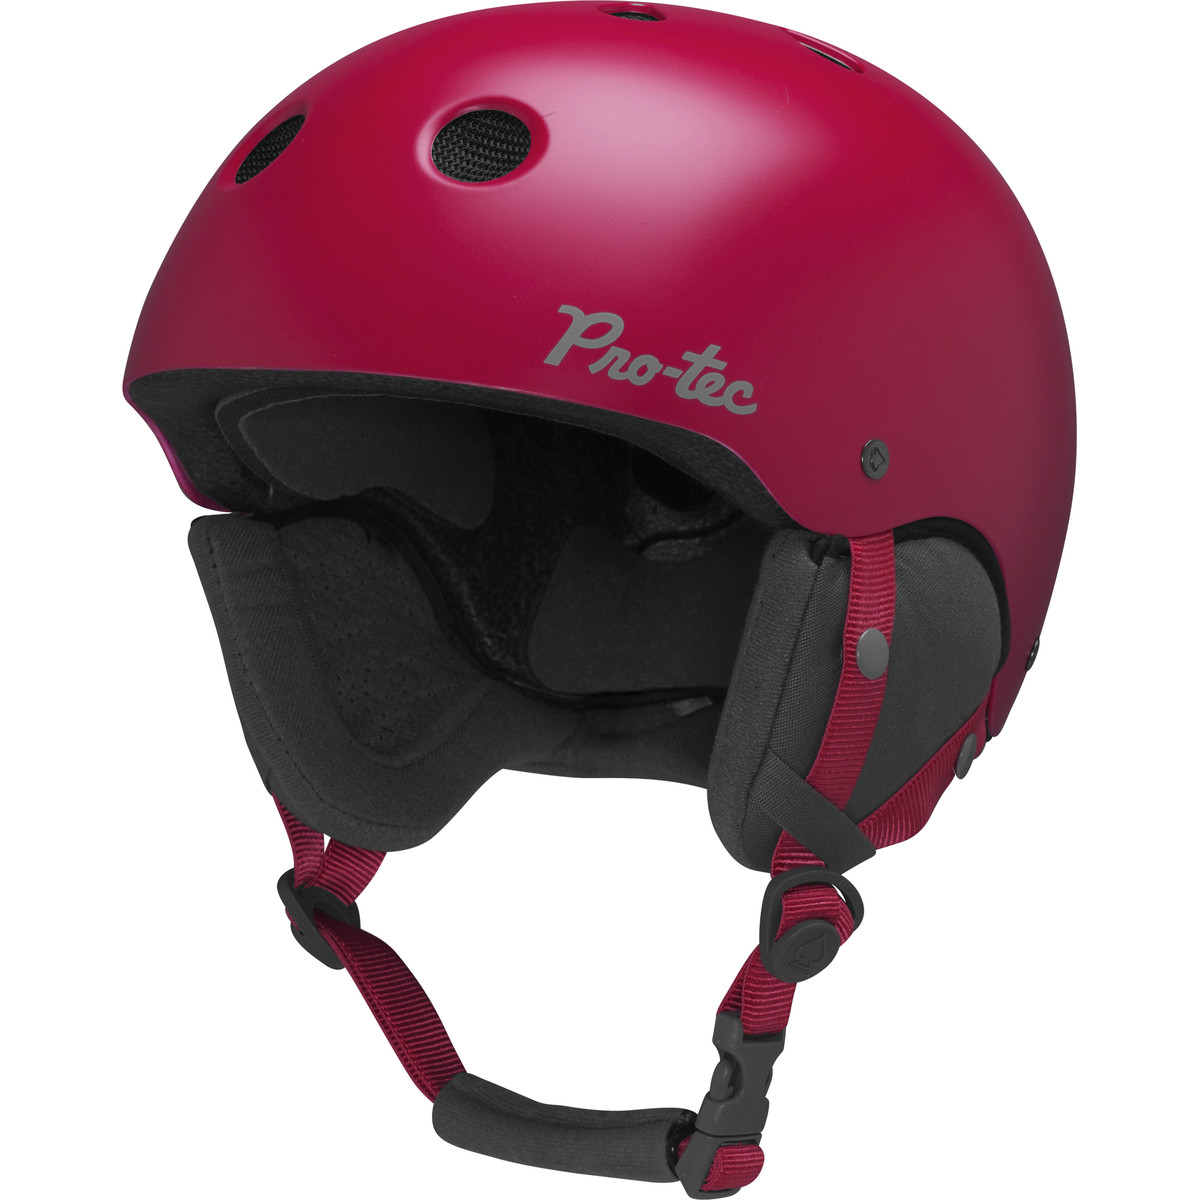 photo: Pro-tec Unisex Classic Snow Helmet